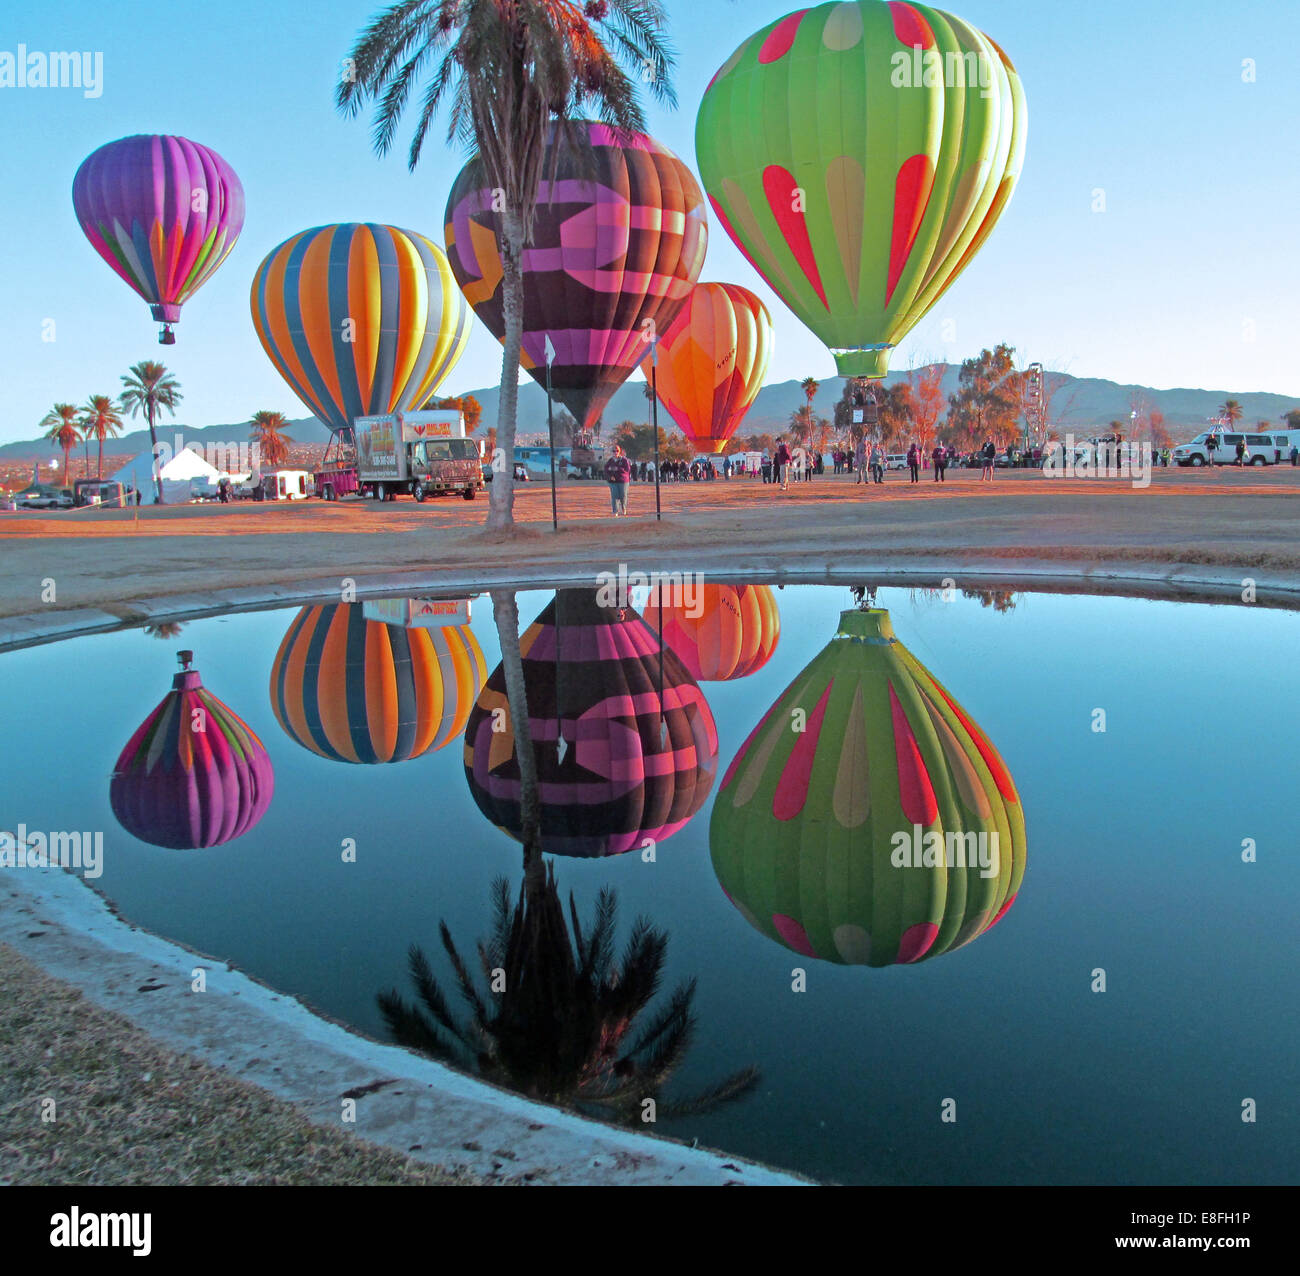 Stati Uniti d'America, Arizona, Mohave County, Lake Havasu City, Beachcomber Boulevard, Lake Havasu, Lake Havasu Immagini Stock